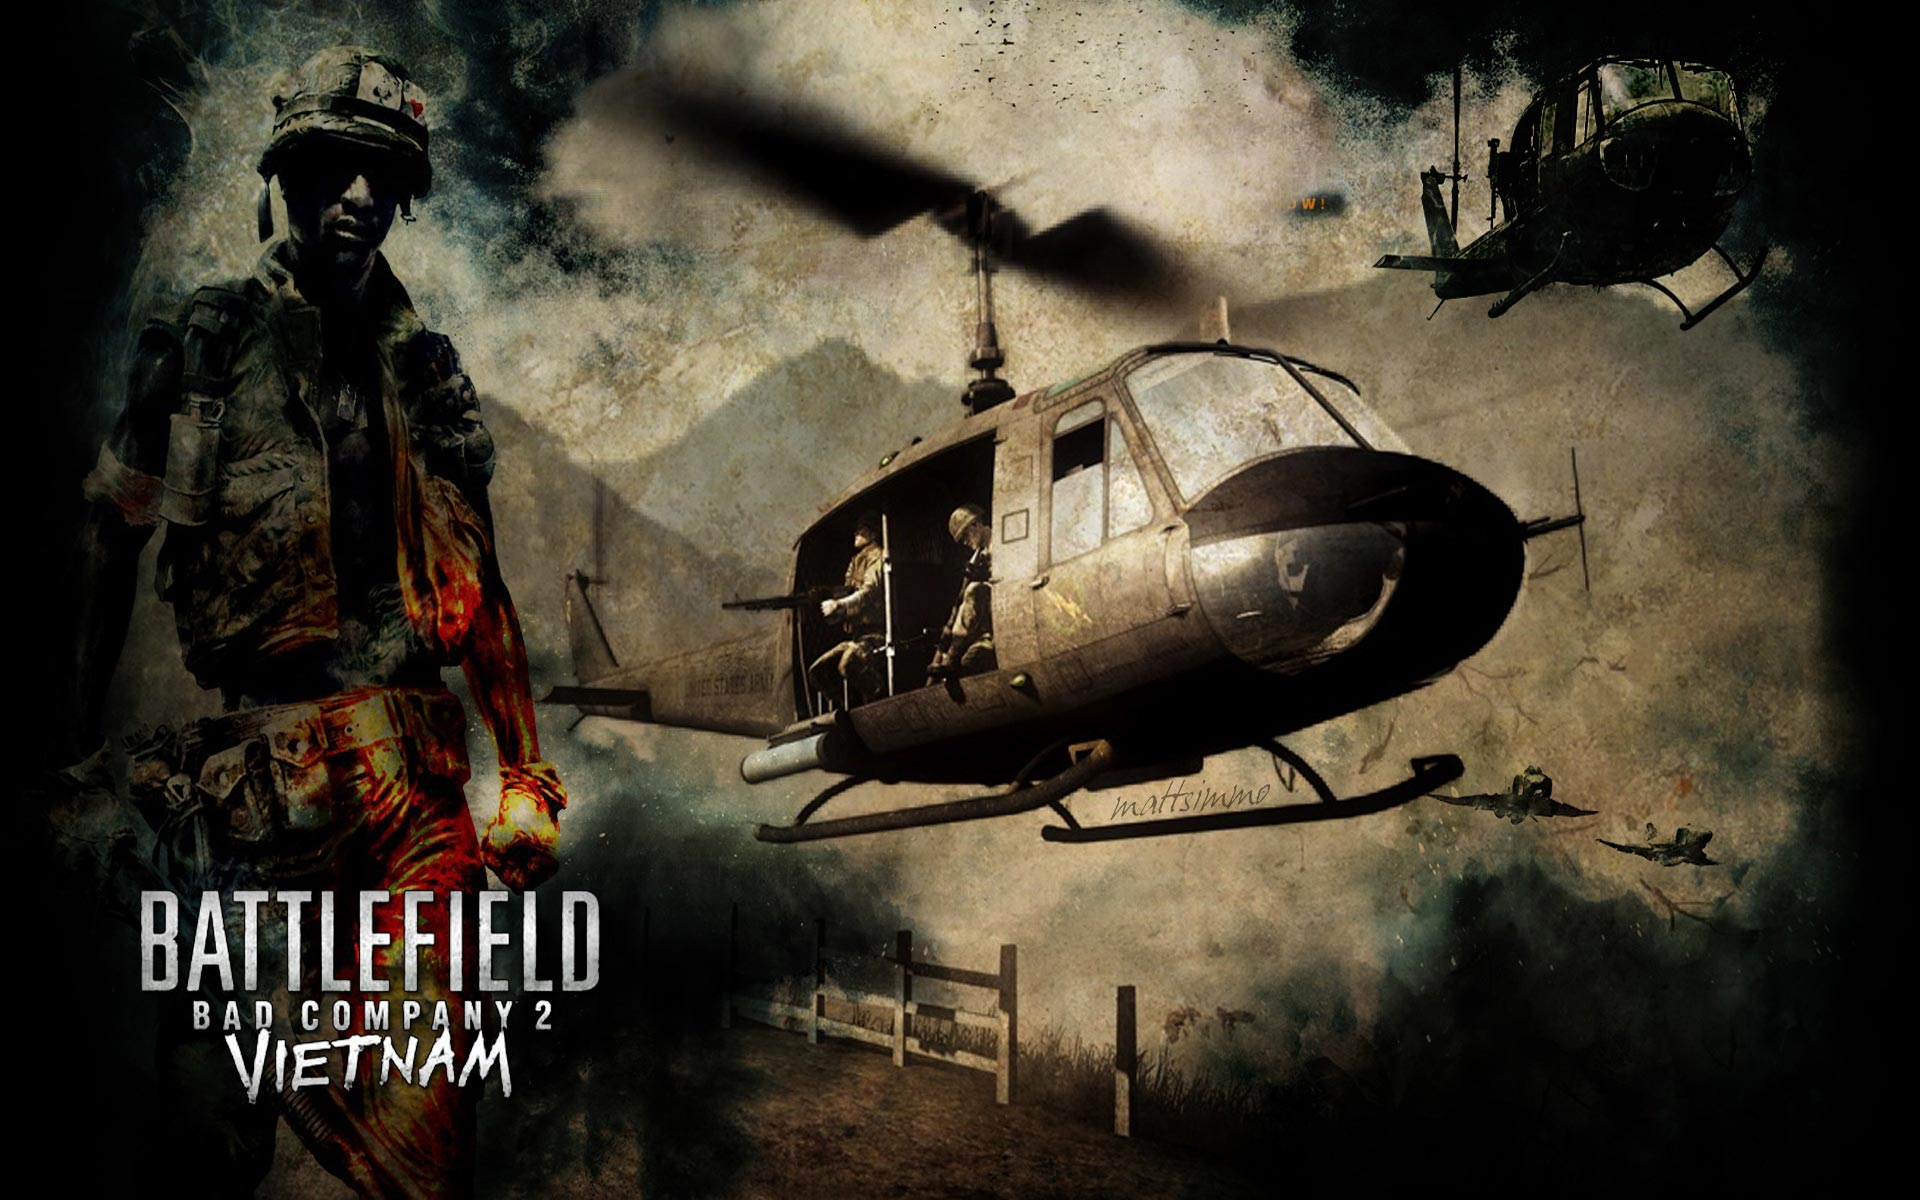 battlefield bad company 2 vietnam hd wallpaper | hd latest wallpapers